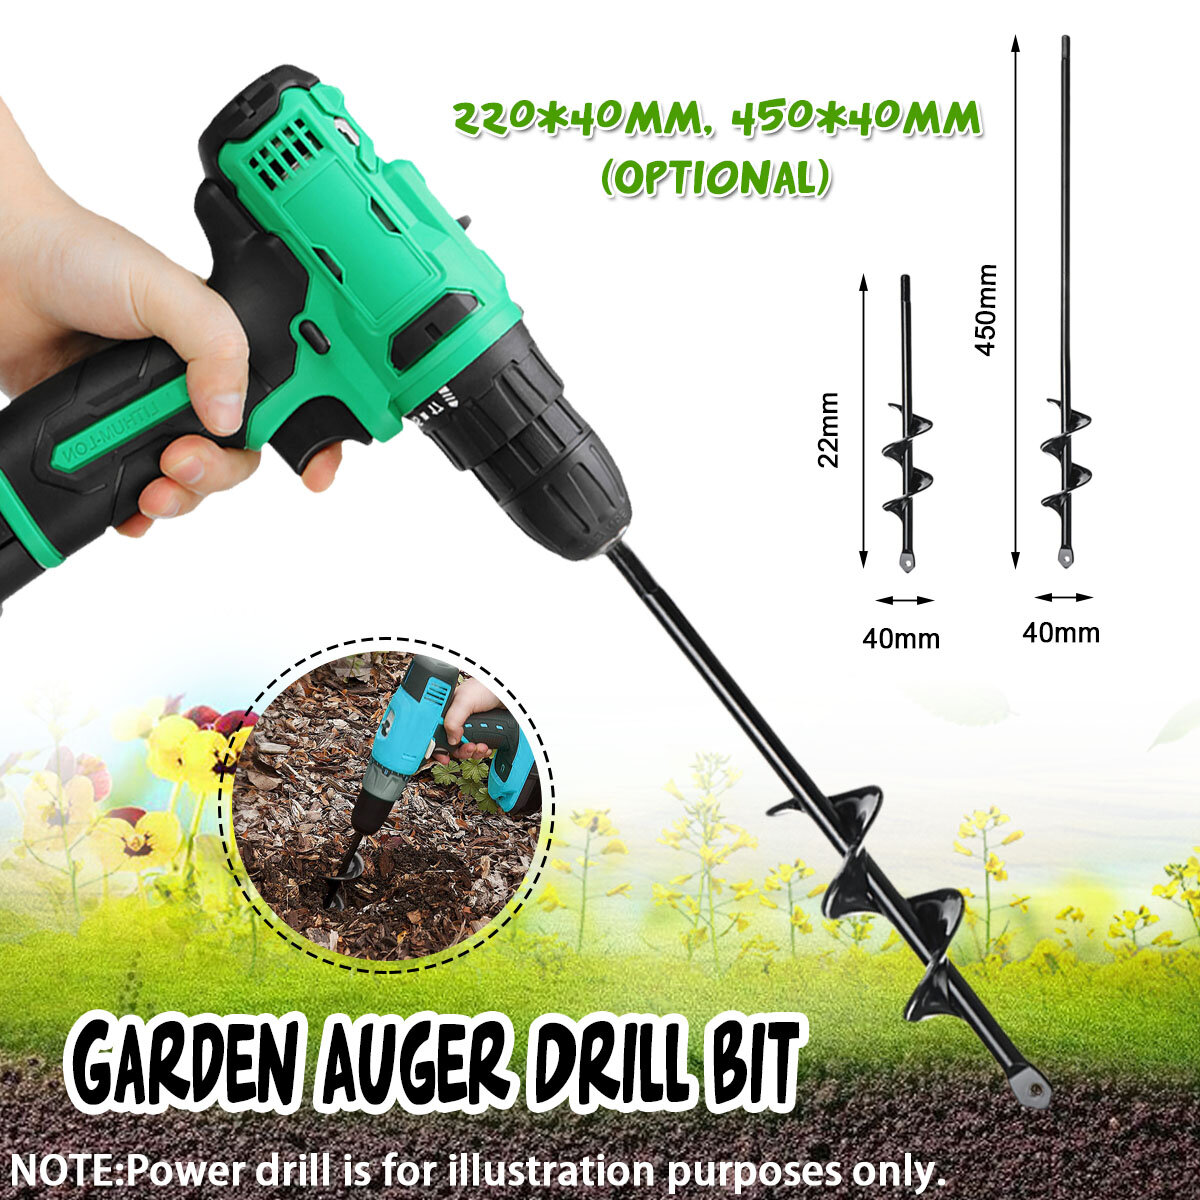 4x22/4x45cm Garden Auger Small Earth Planter Drill Bit Post Hole Digger Earth Planting Auger Drill Bit for Electric Drill